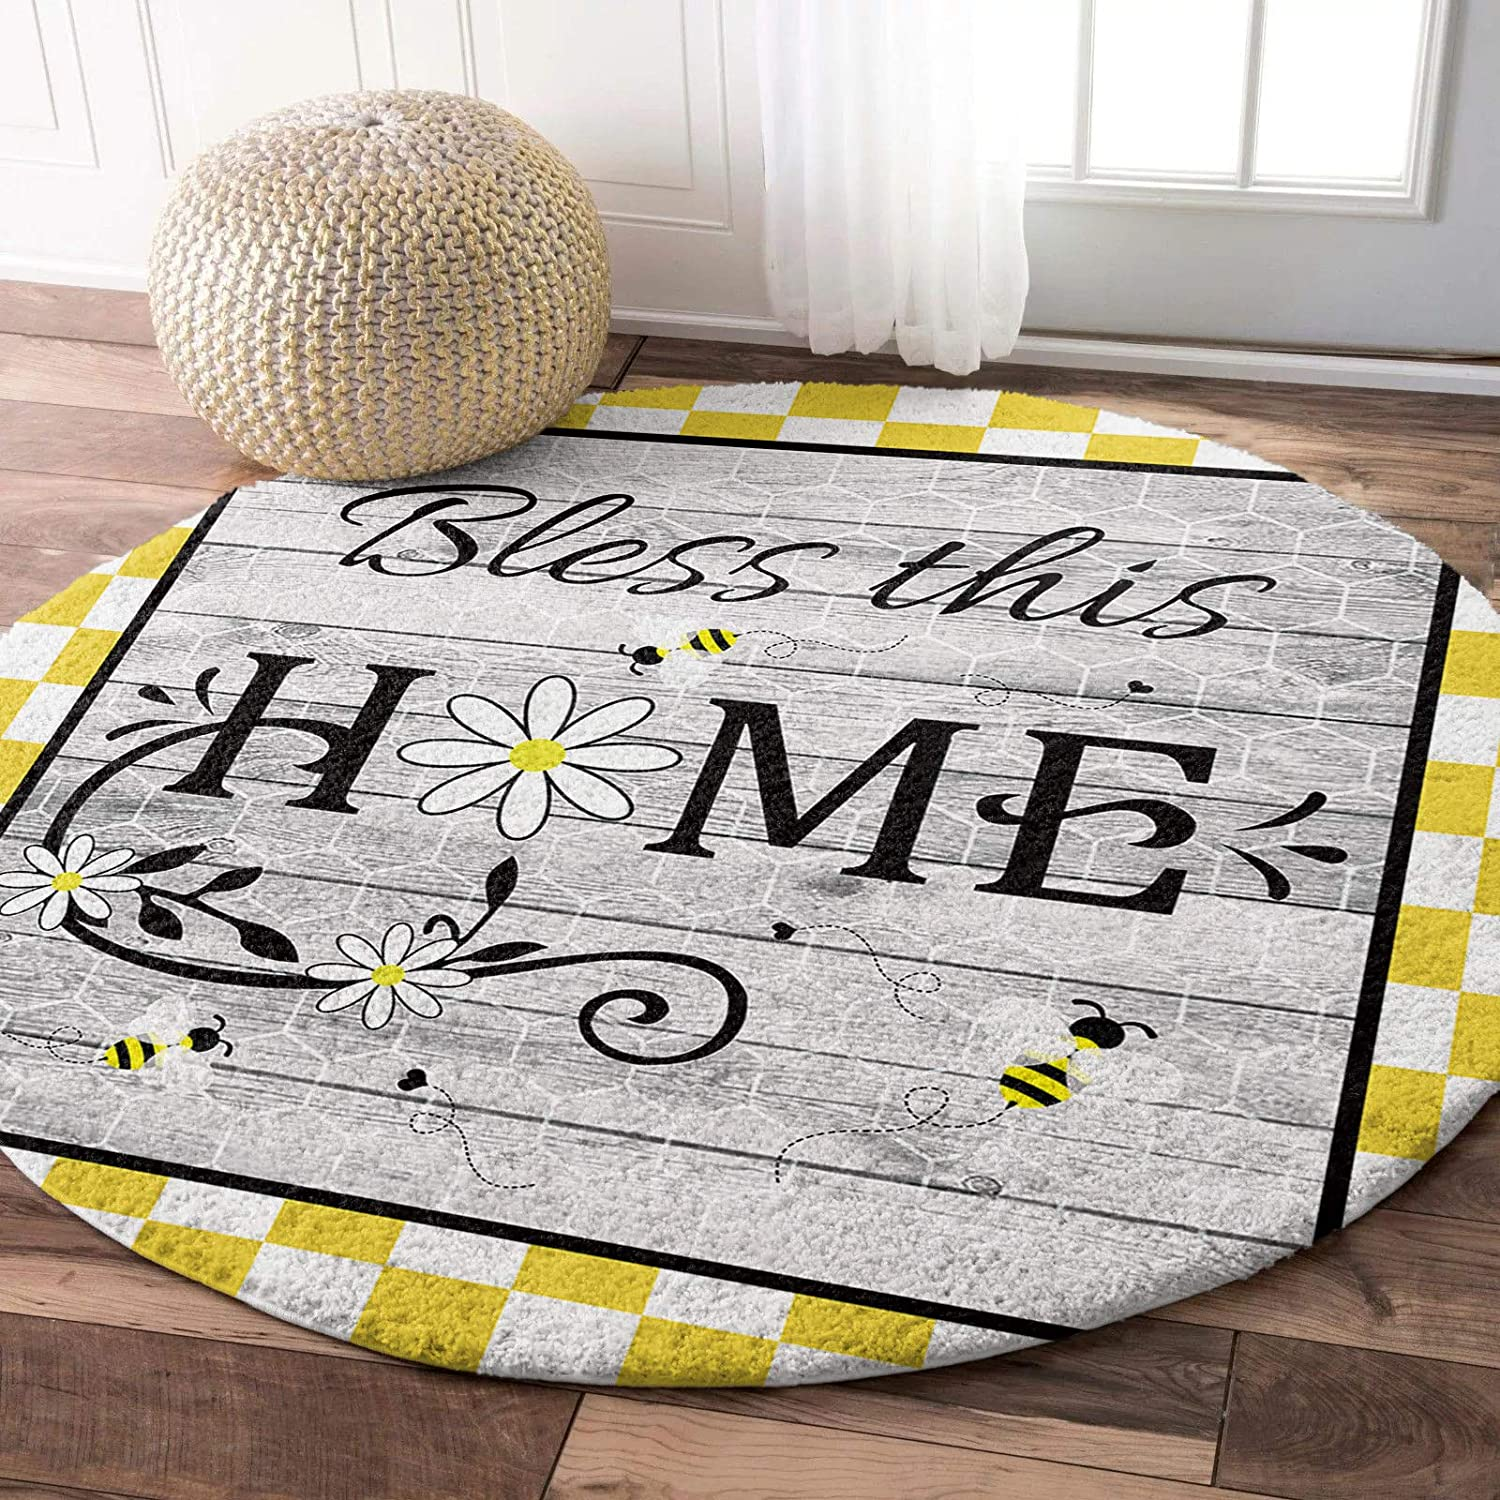 Round Fluffy High order Area Rugs Carpet Bless on Boa Daisy this Home New Shipping Free Shipping Wood